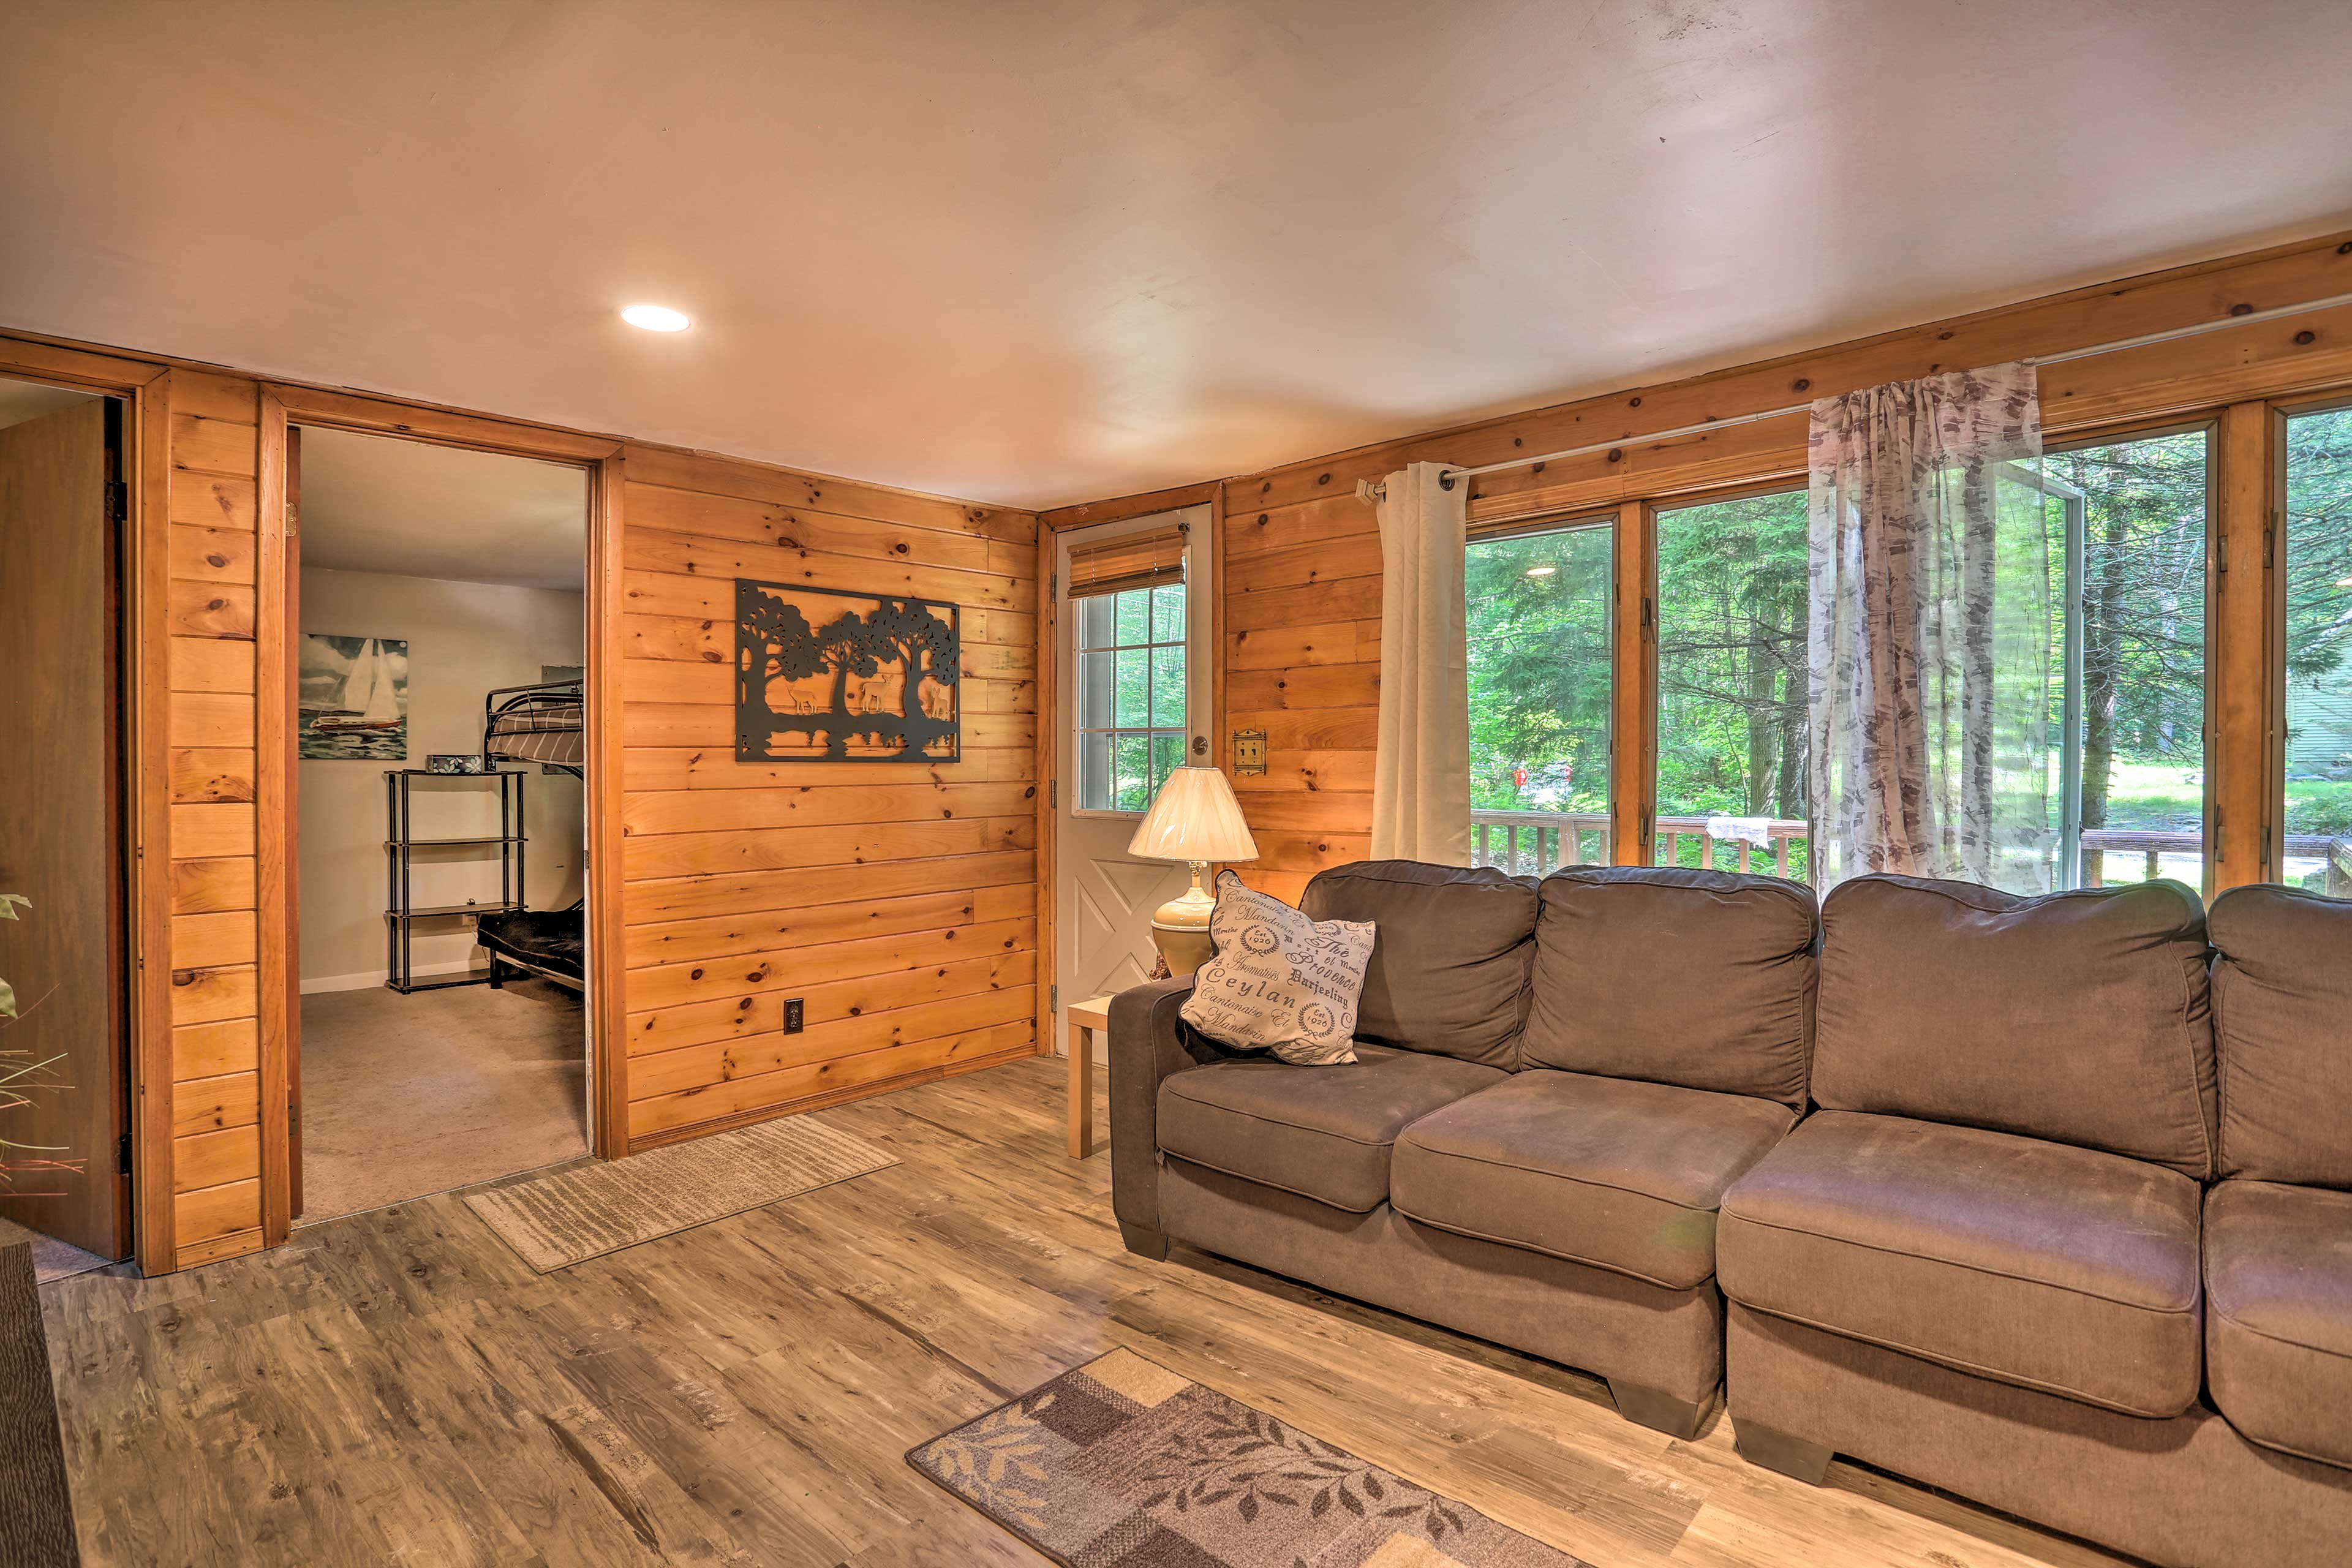 The living room features country-chic decor and pine details.